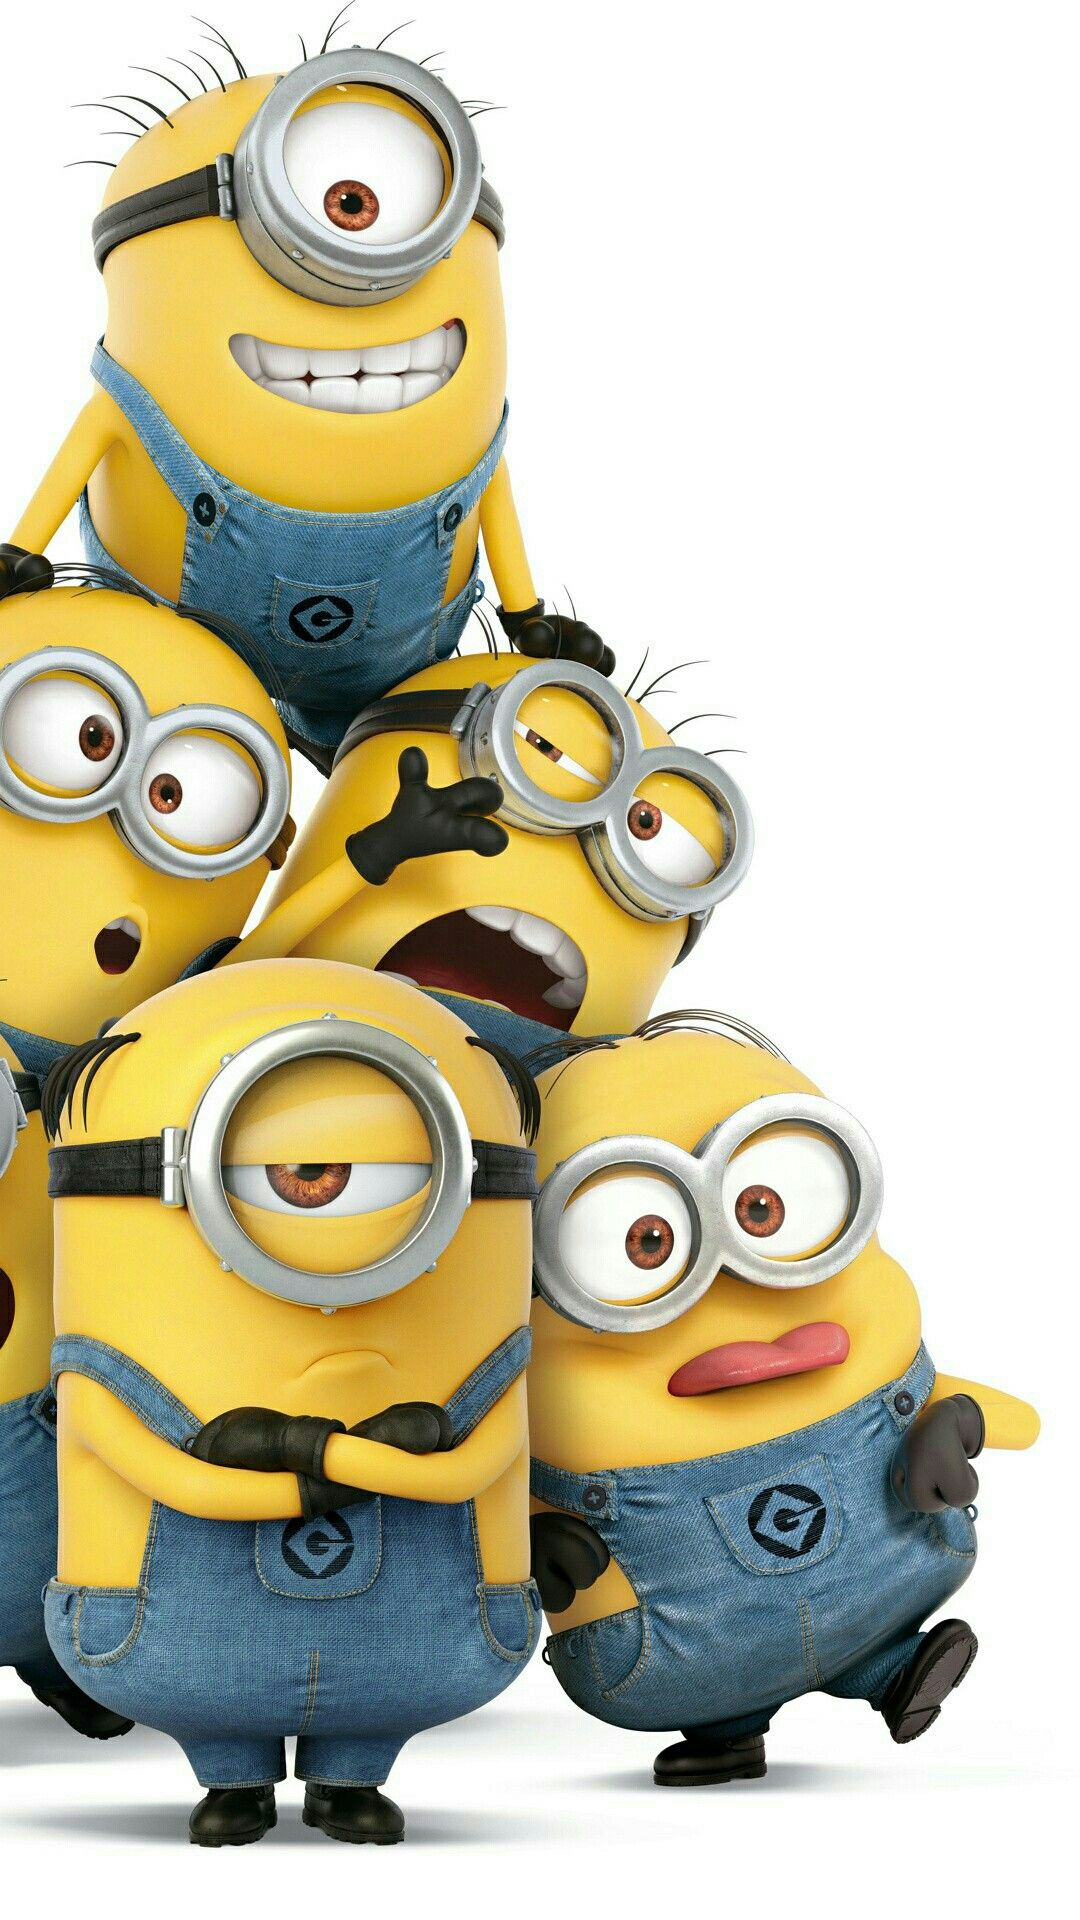 Minions Crazy Background Dengan Gambar Minions Despicable Me Minion Kertas Dinding Lucu